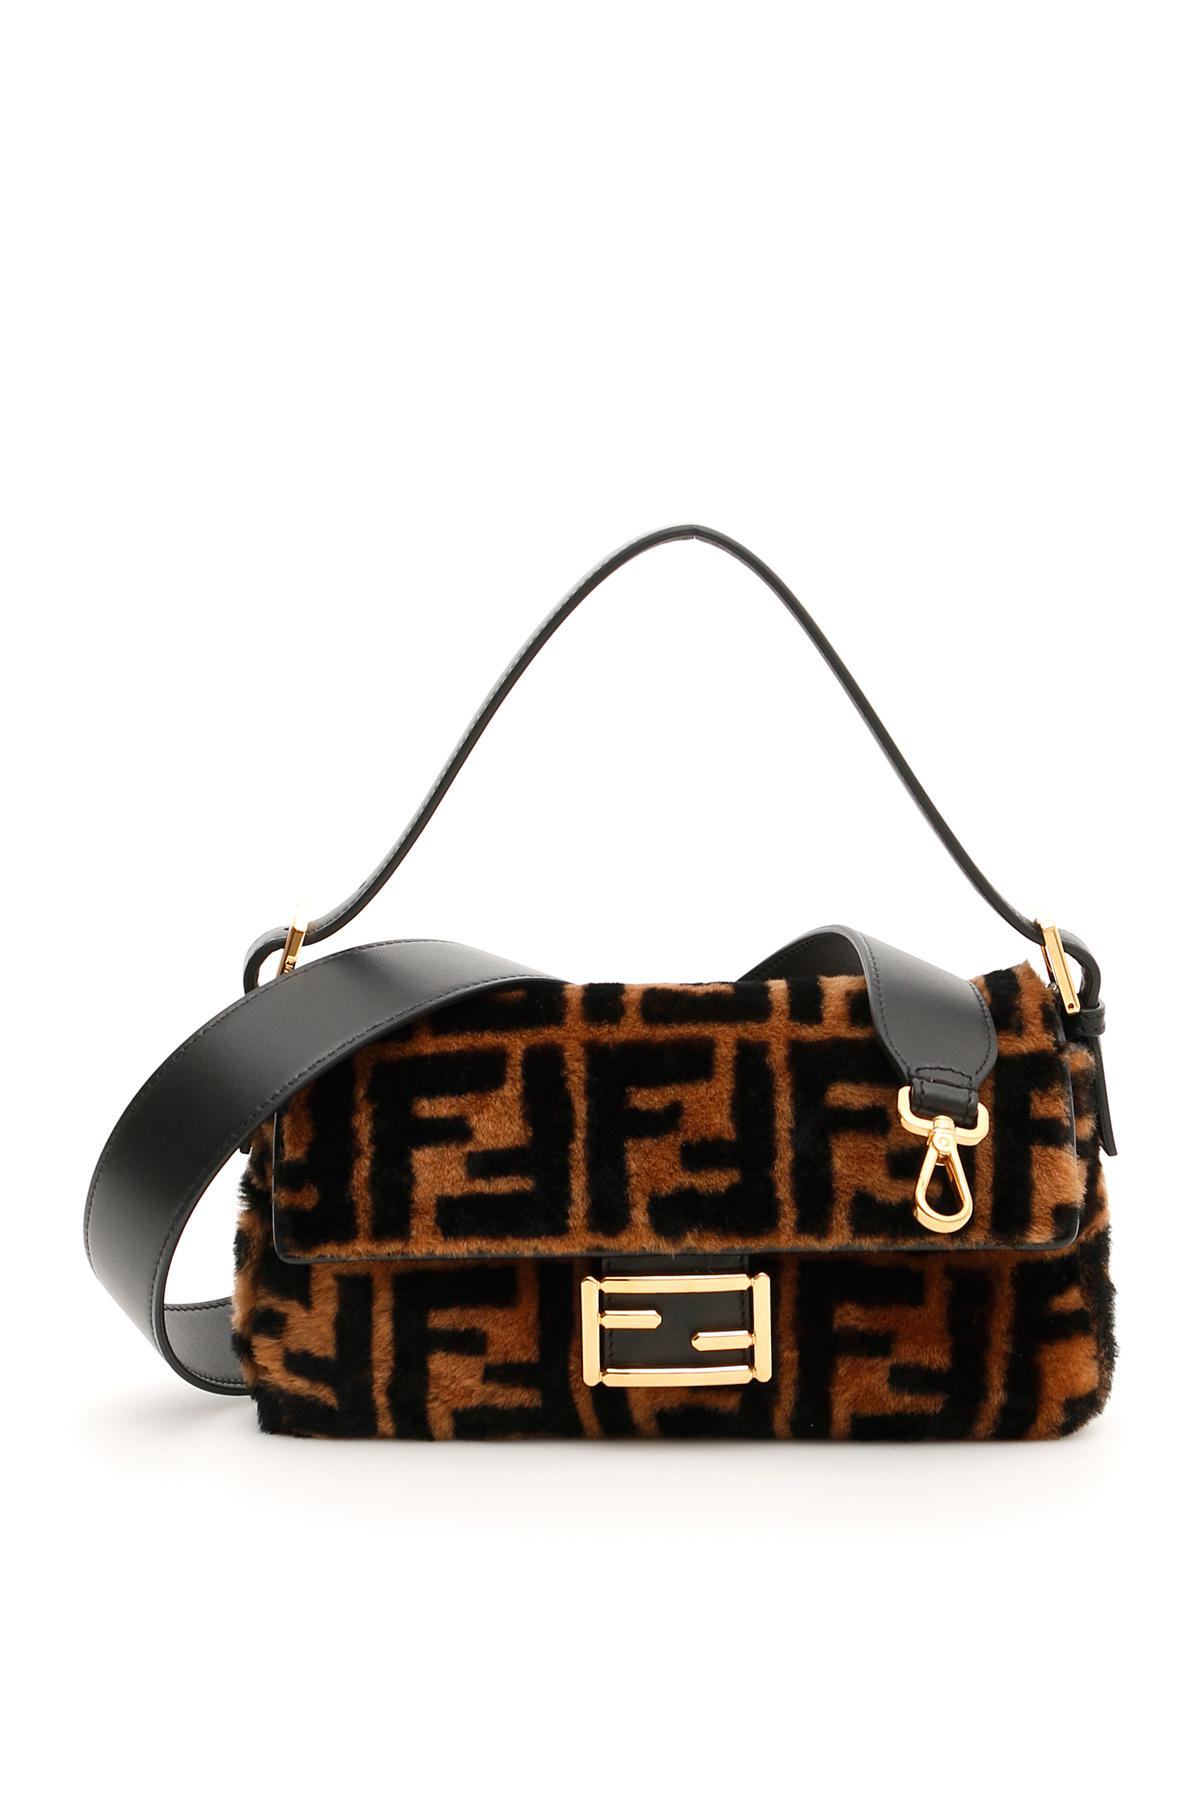 Lyst - Fendi Shearling Ff Baguette Bag in Black 7a4dcae00ad60